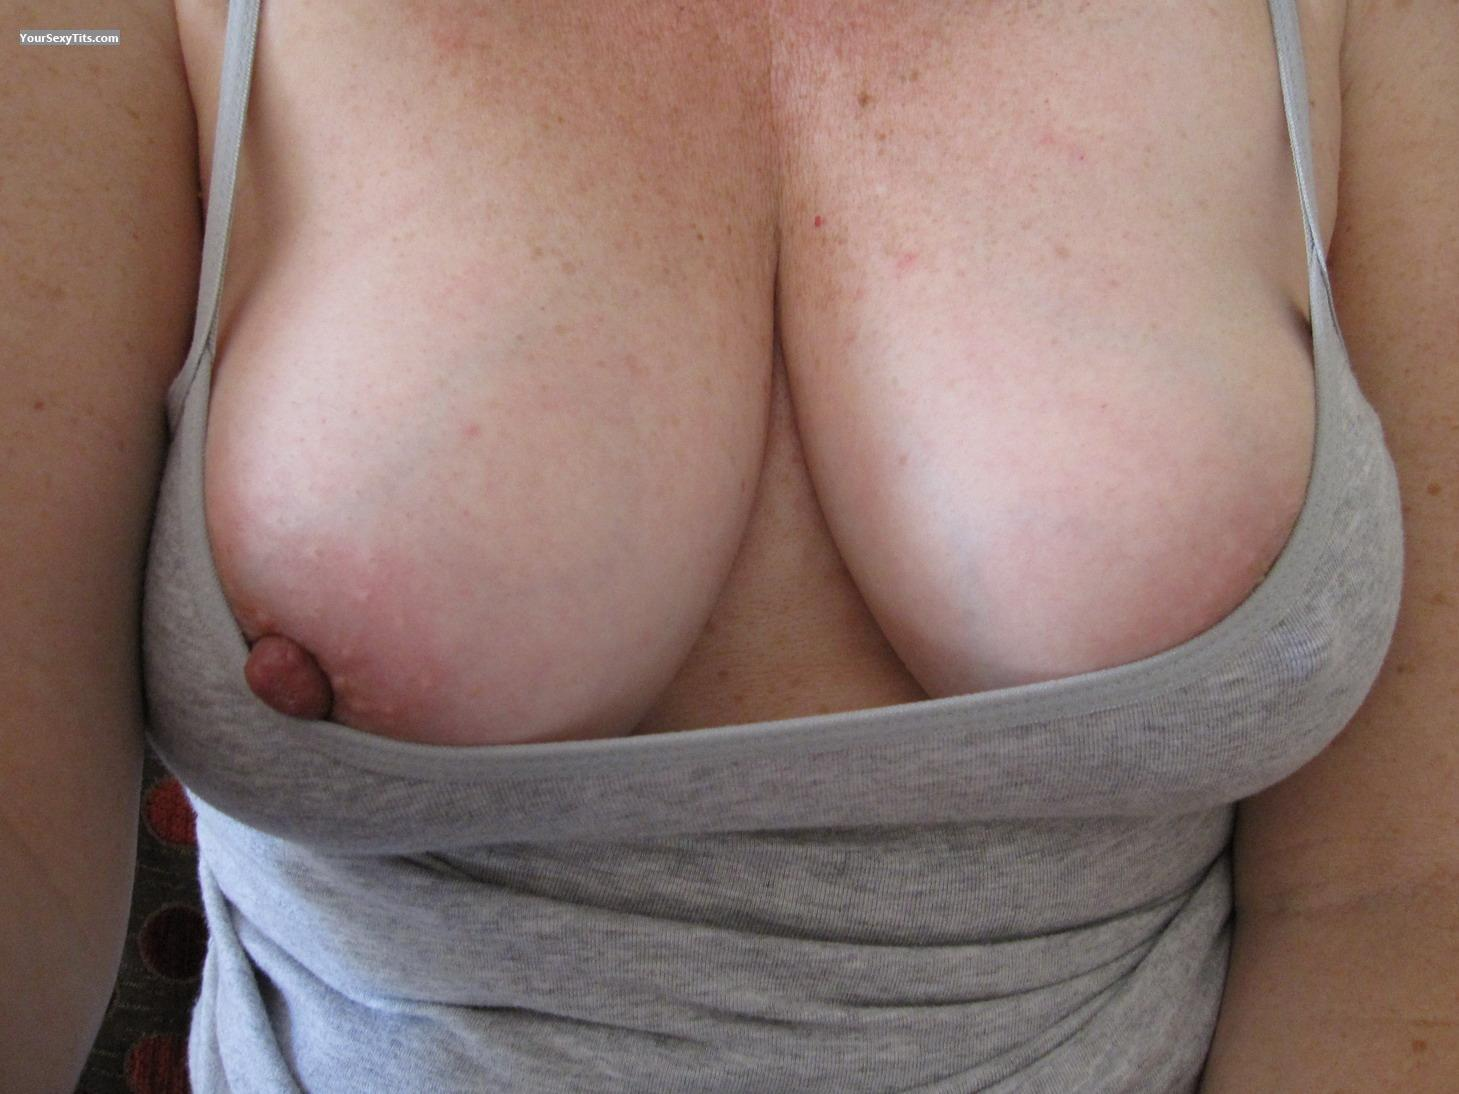 Tit Flash: My Medium Tits (Selfie) - Tees from Australia